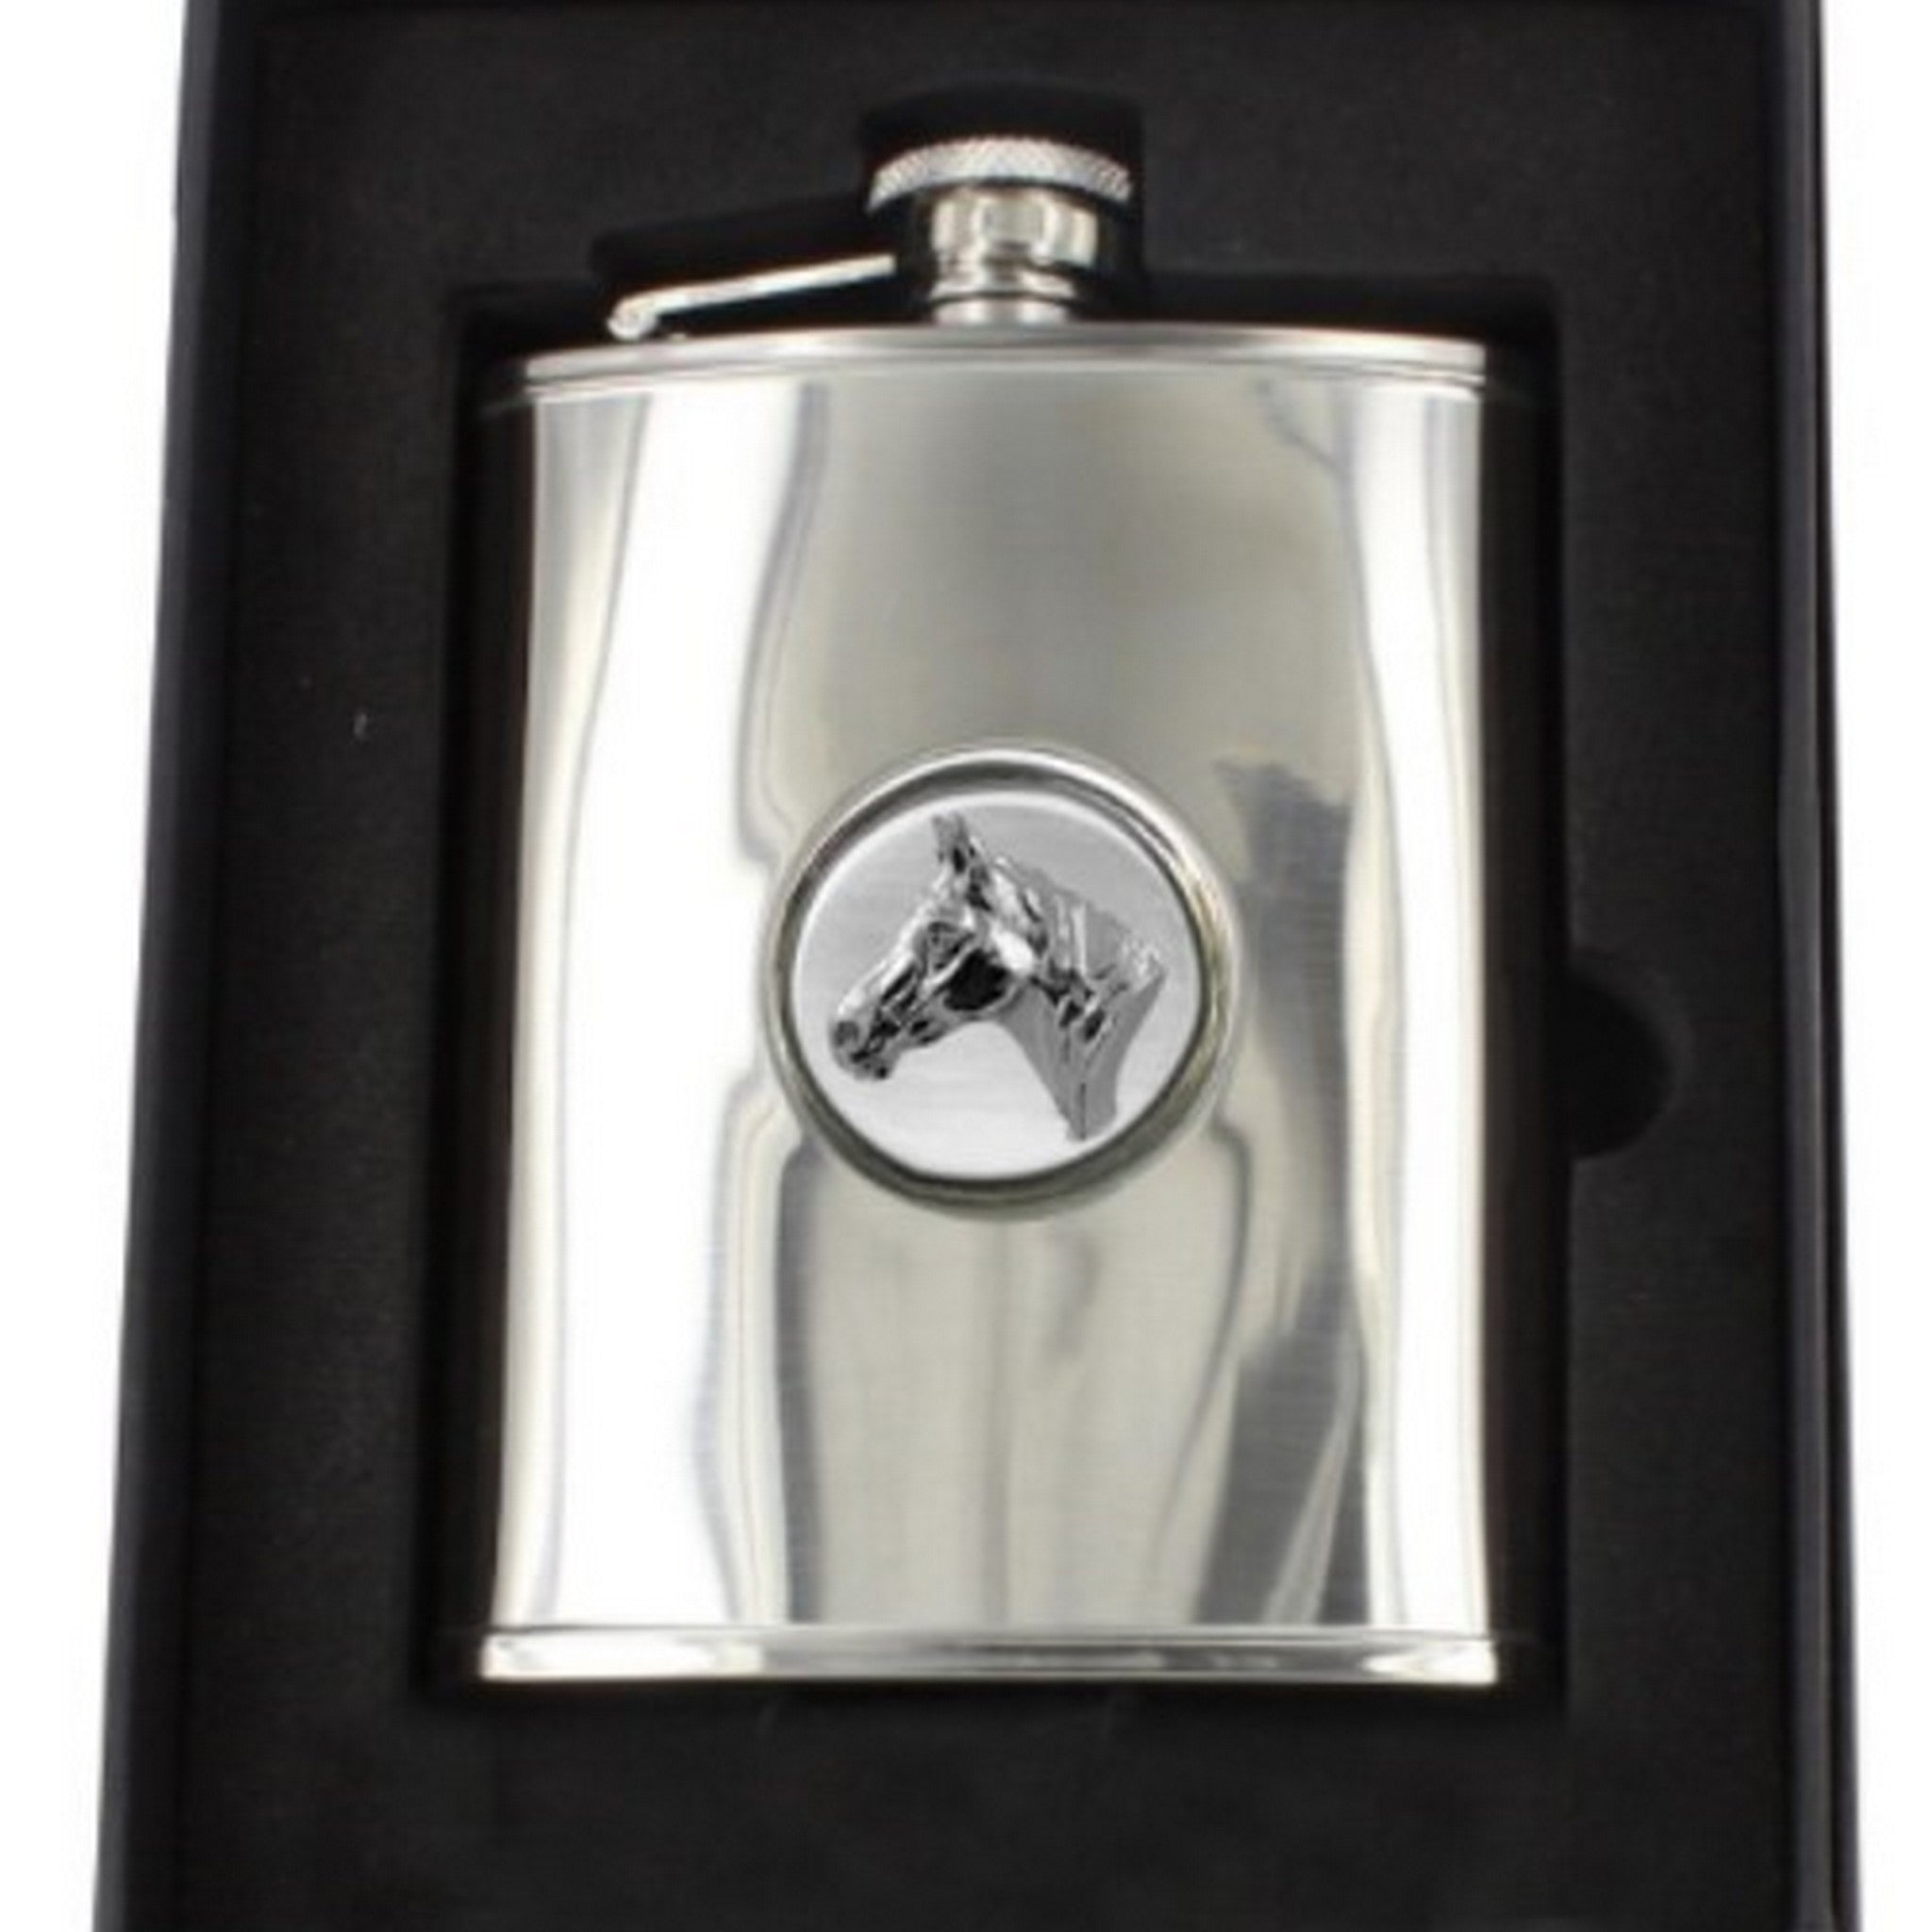 Stainless Steel Engine Turned 6oz Hip Flask With Horses Head Badge